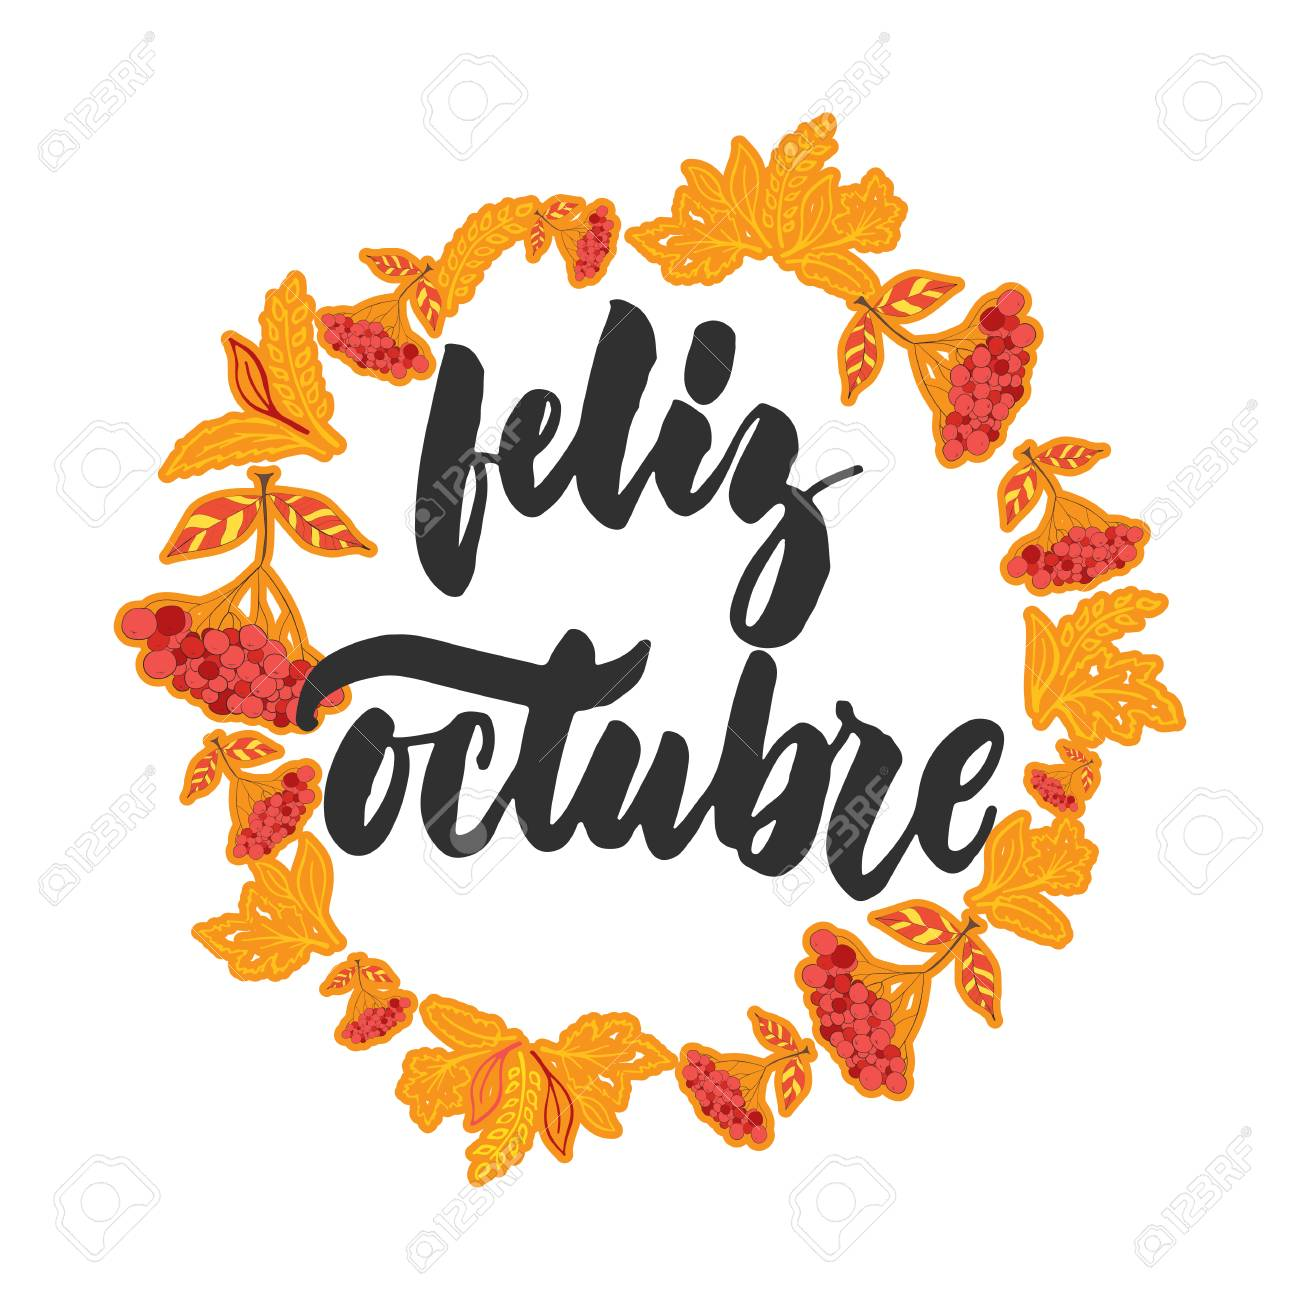 Feliz Octubre   Happy October In Spanish, Hand Drawn Latin Autumn Month  Lettering Quote.